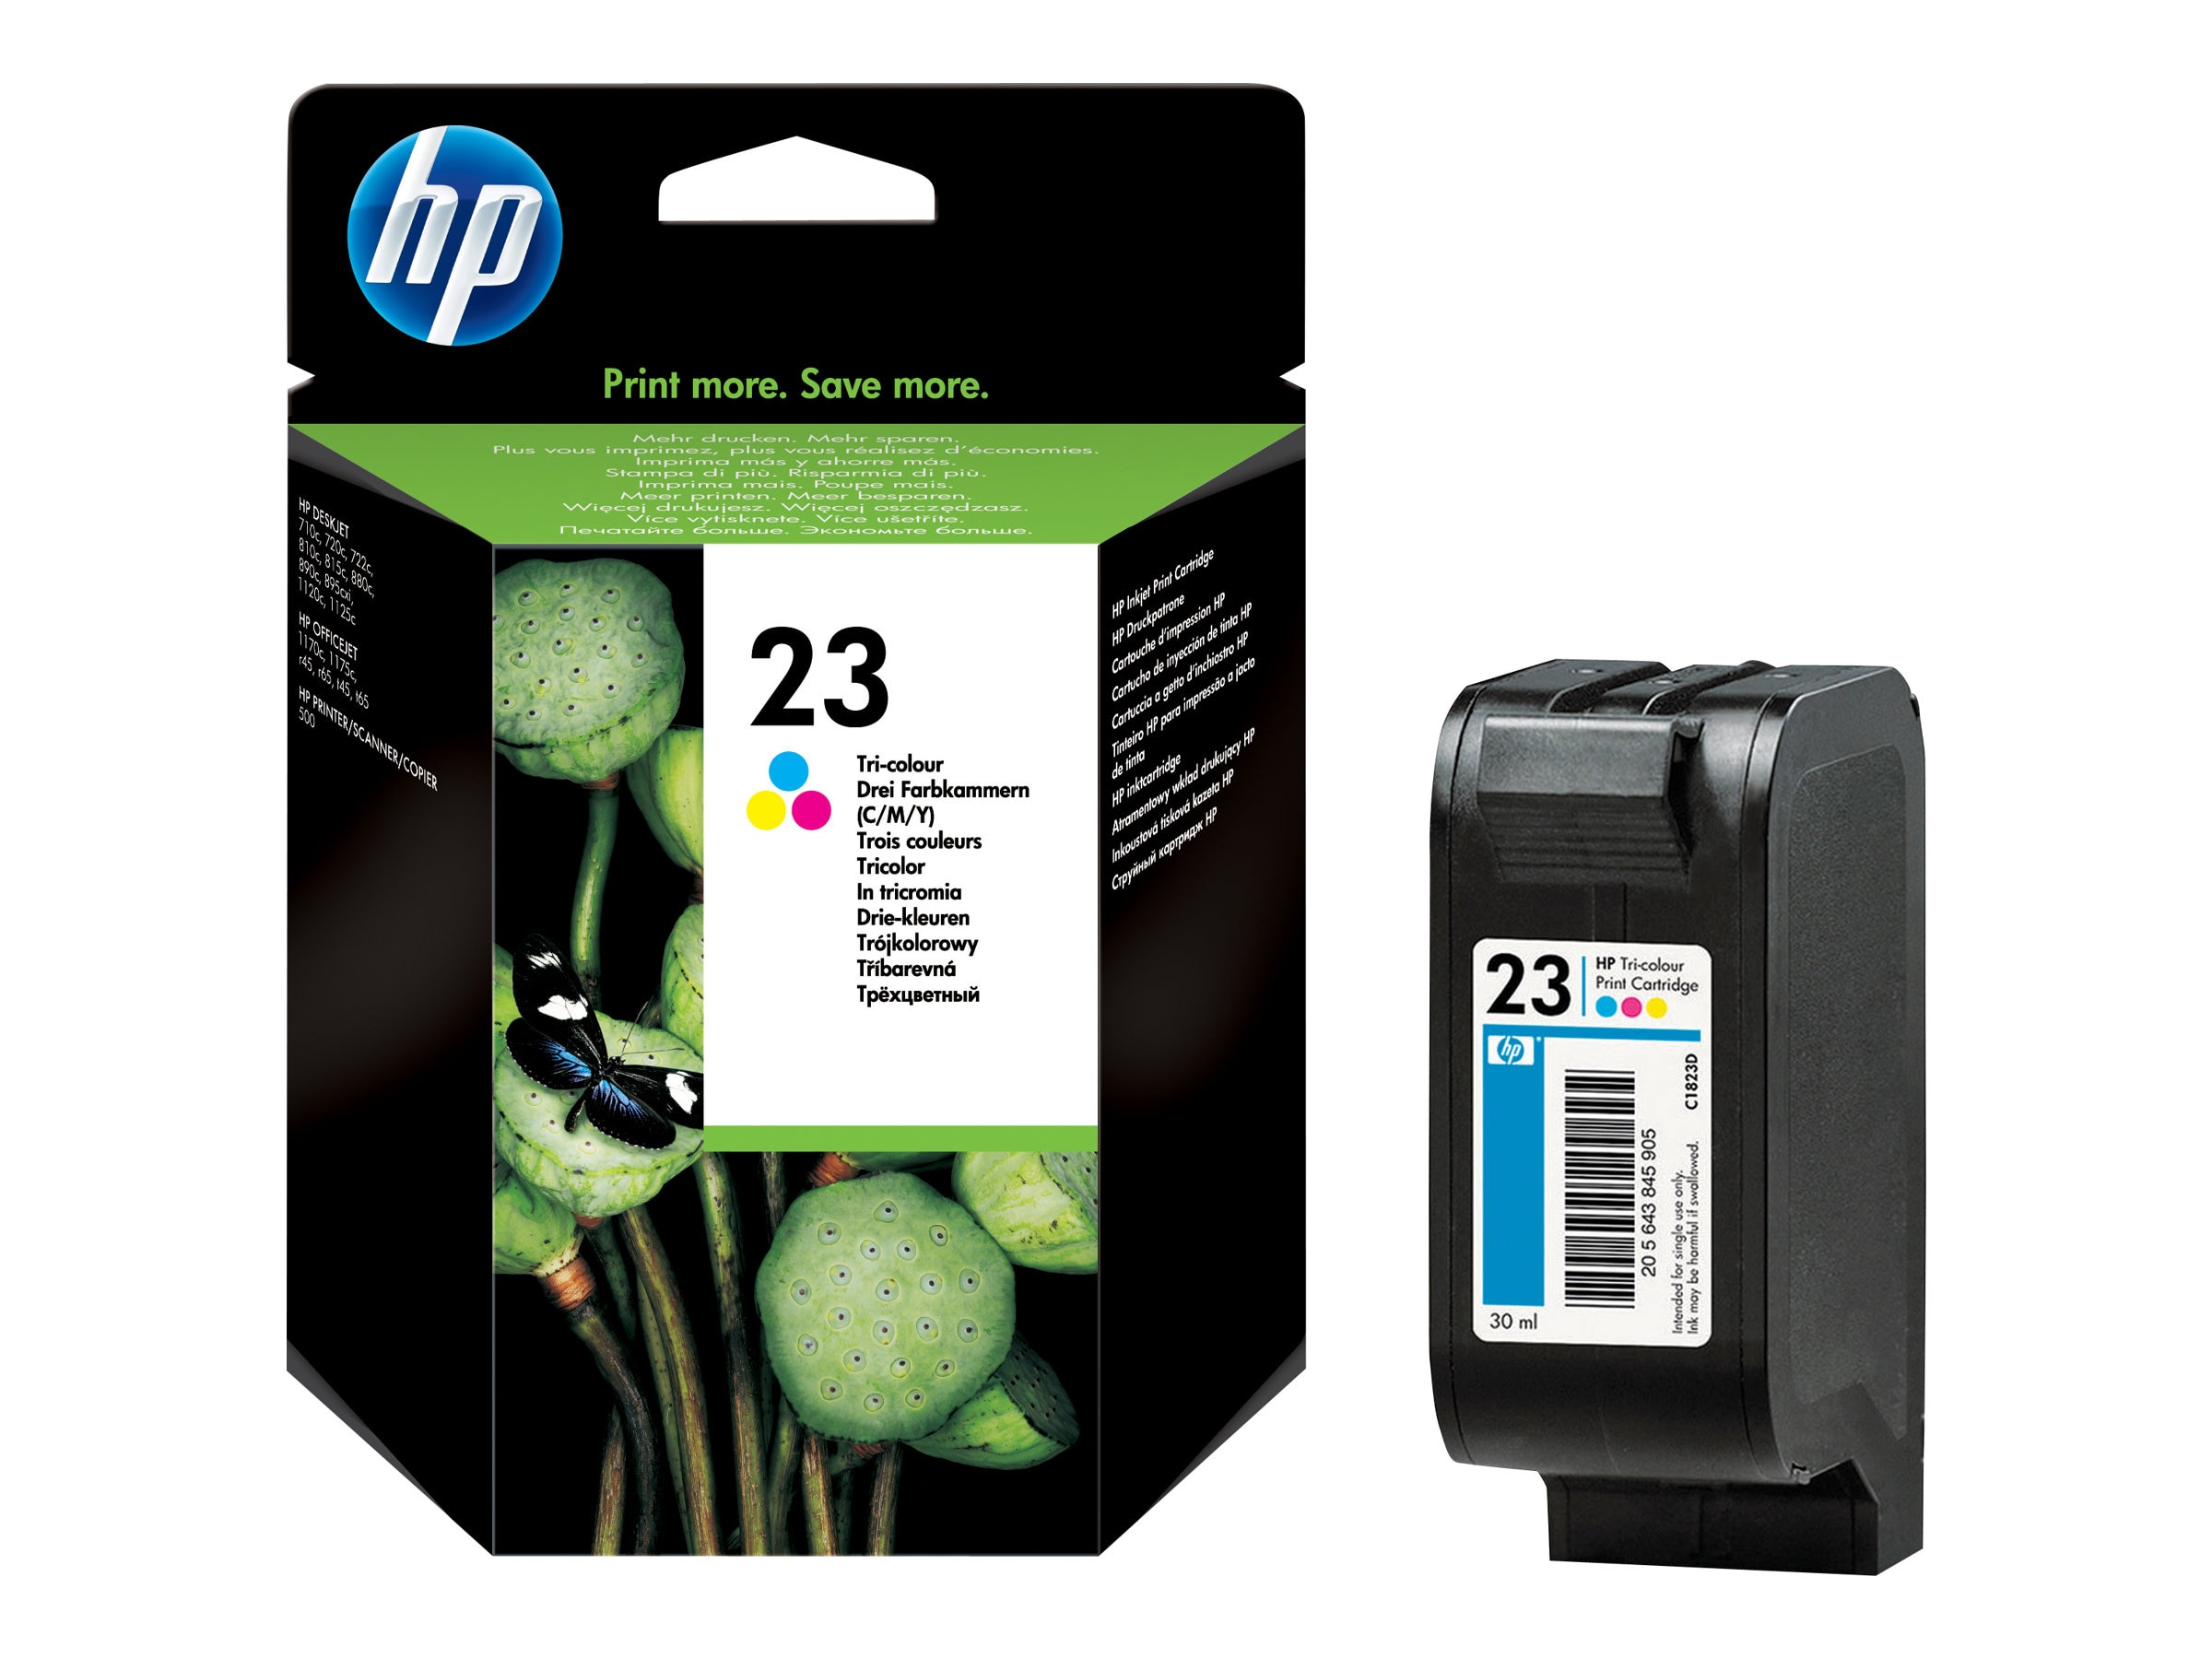 HP 23 (C1823D) Tri-color Original Ink Cartridge, C1823D, 113362, Ink Cartridges & Ink Refill Kits